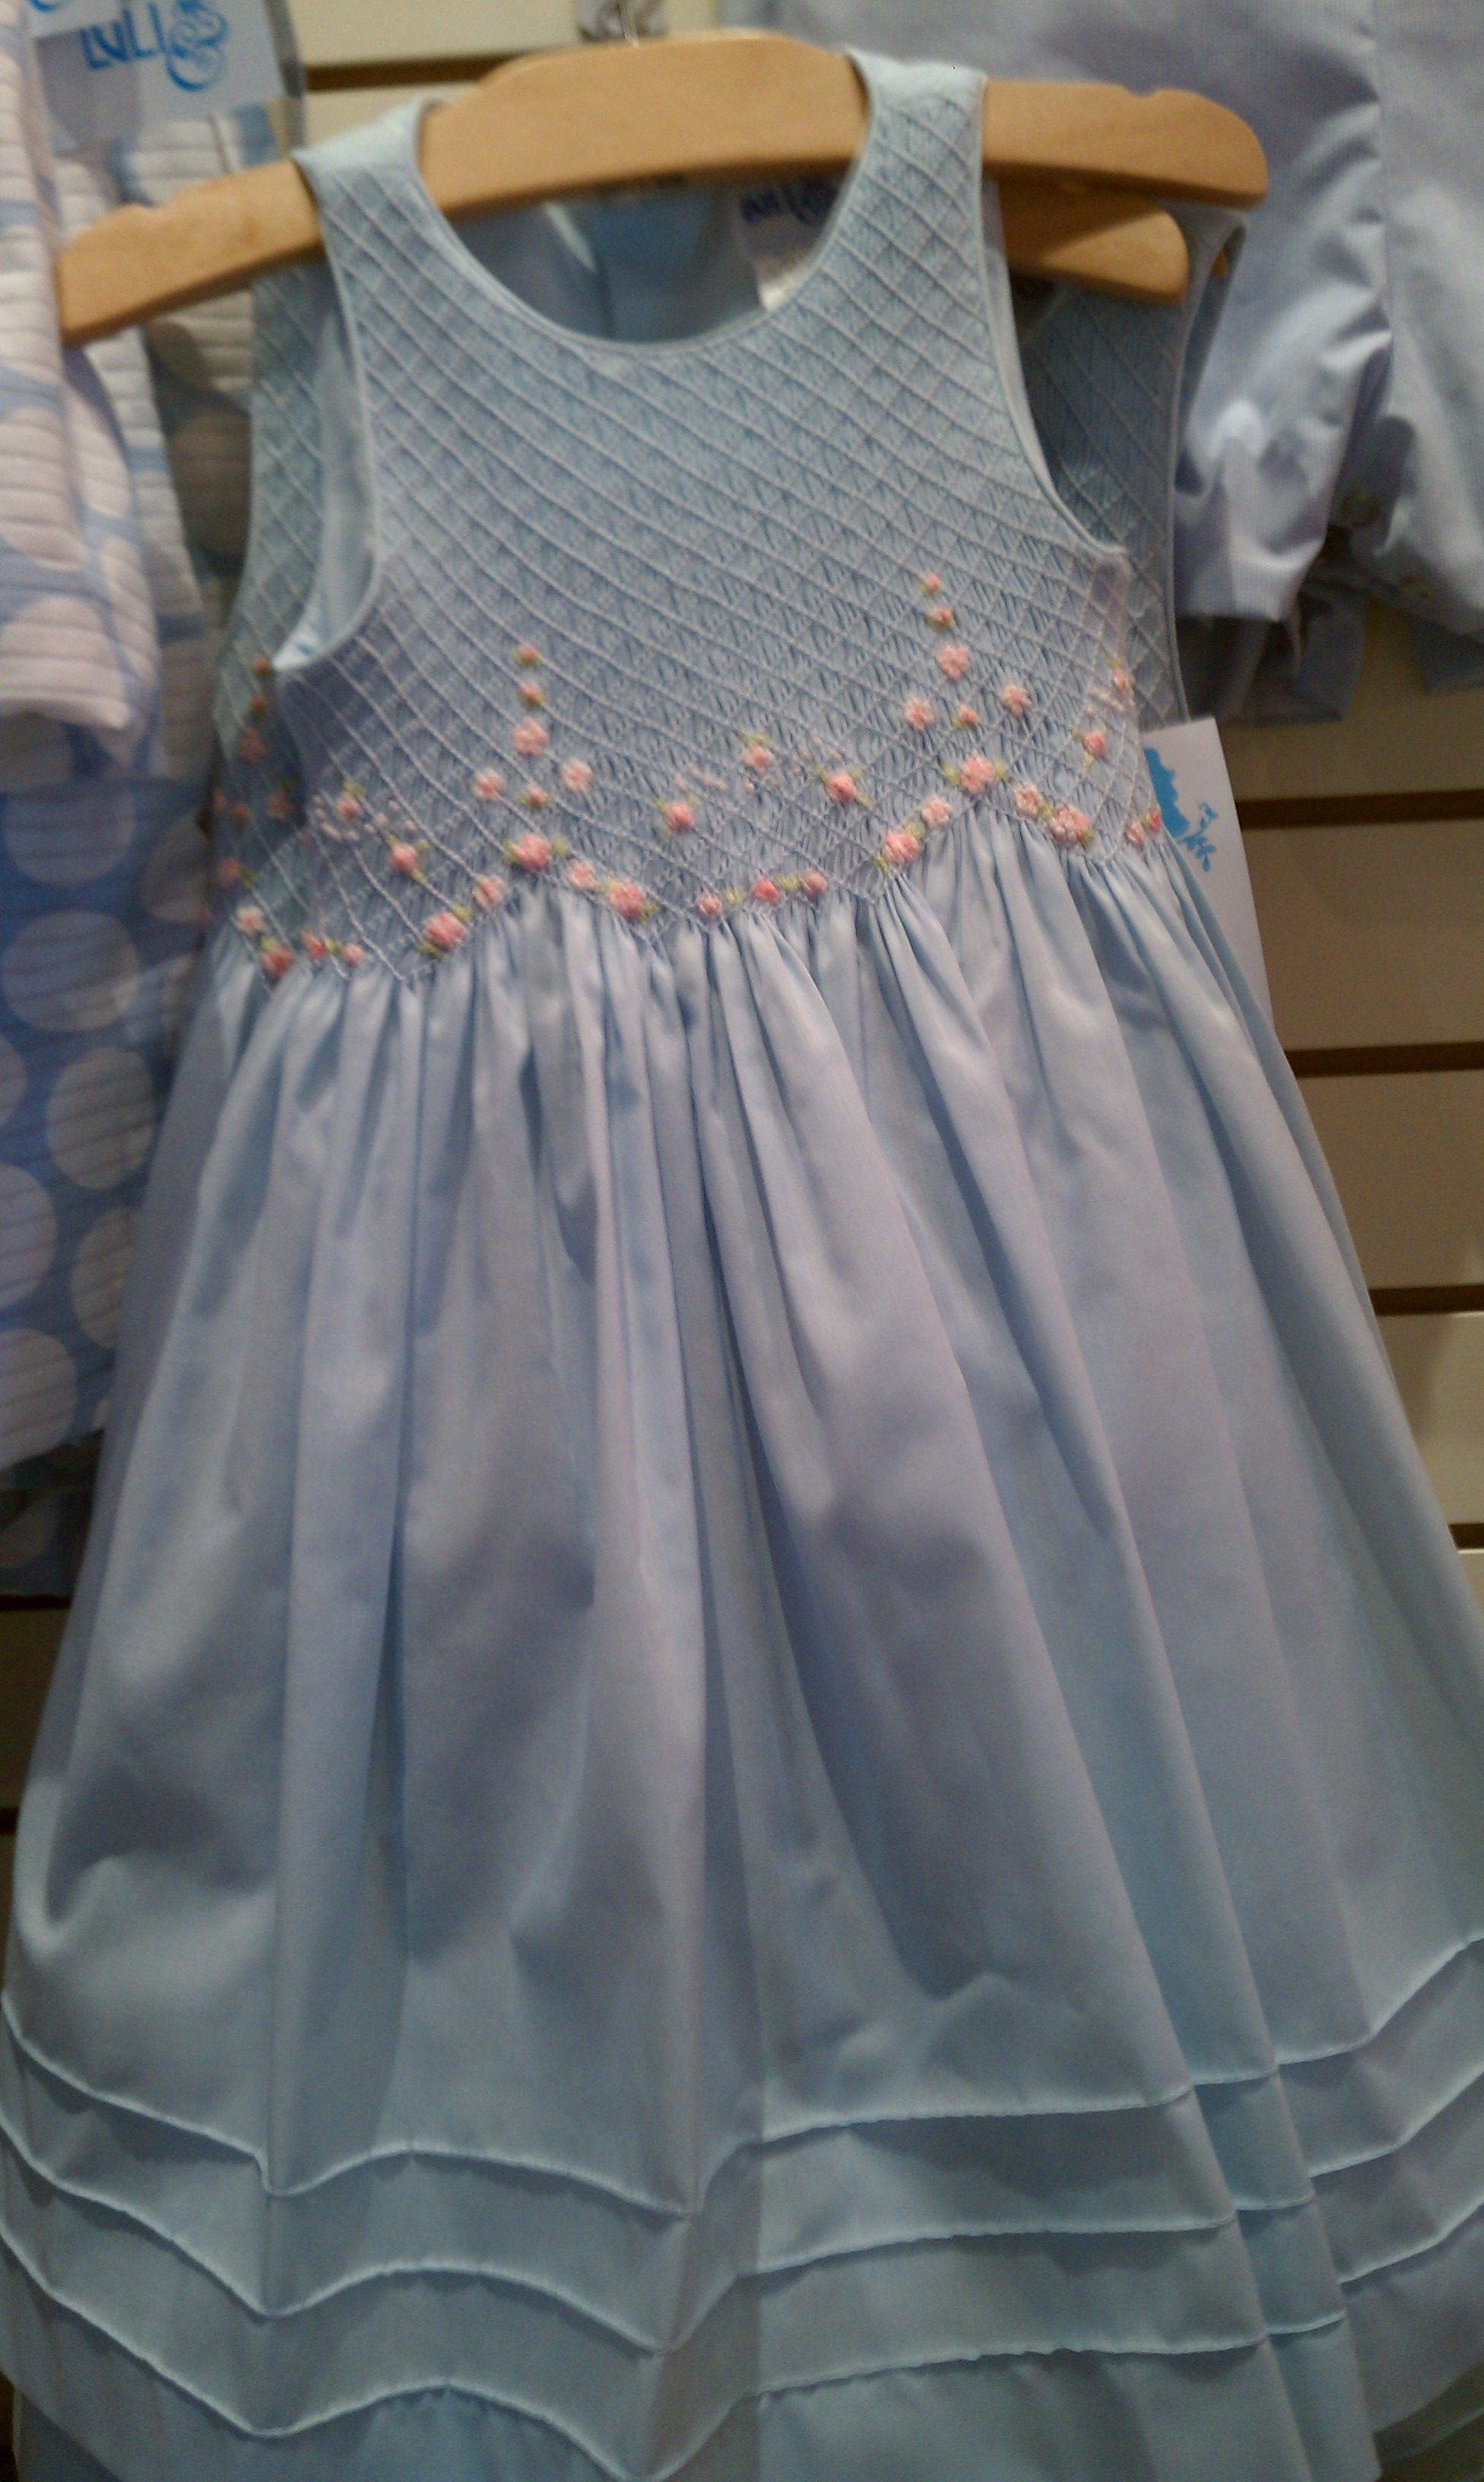 Blue Dress With Pink Rosebuds The Tucked Hem Adds So Much